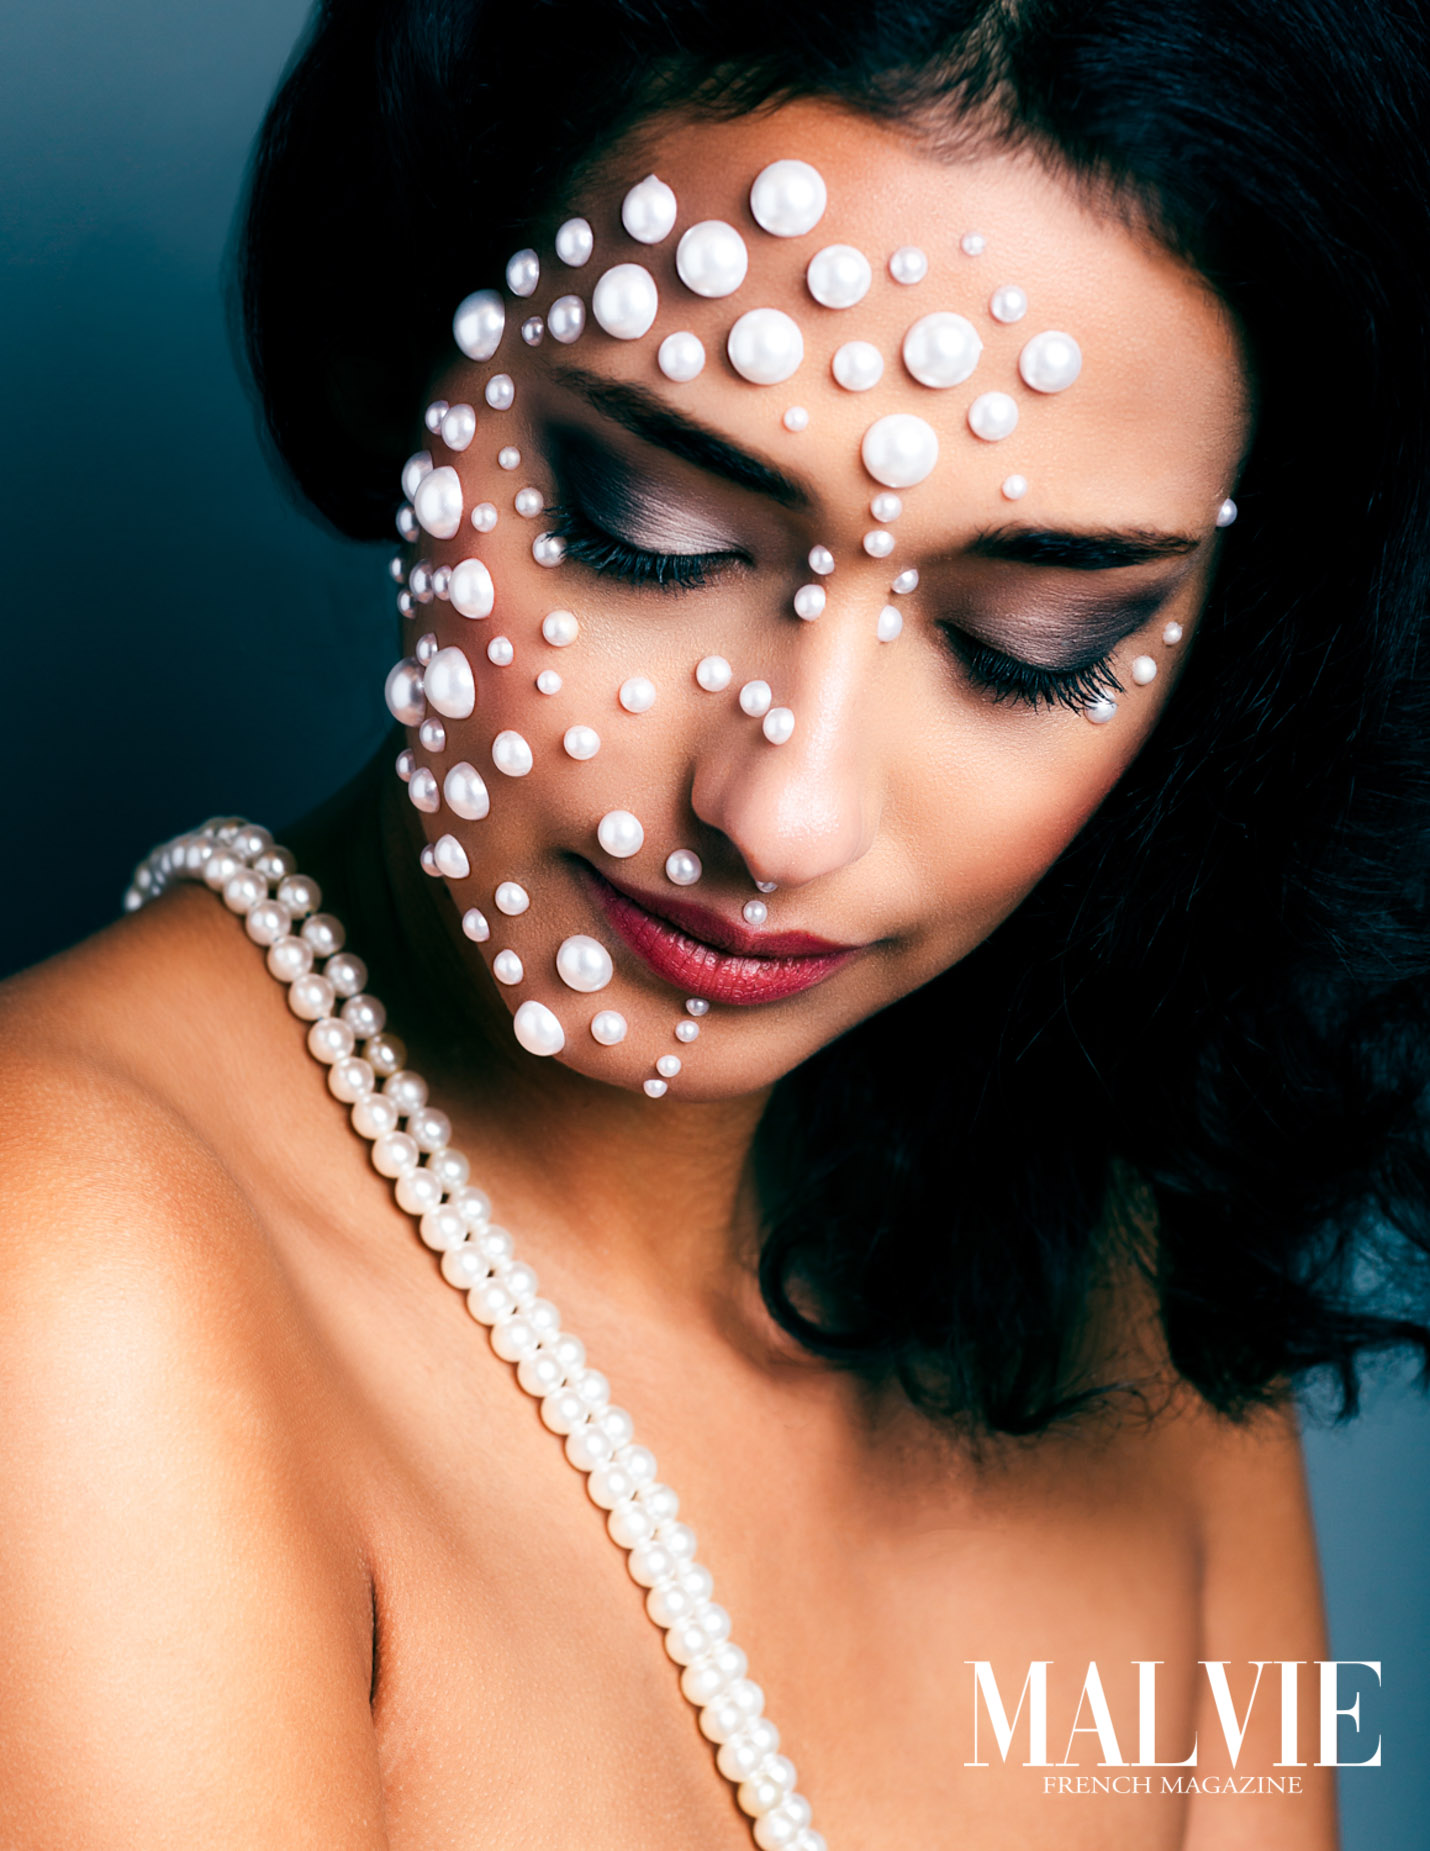 Lustrous pearls MALVIE French Magazine www.MALVIEmag.com